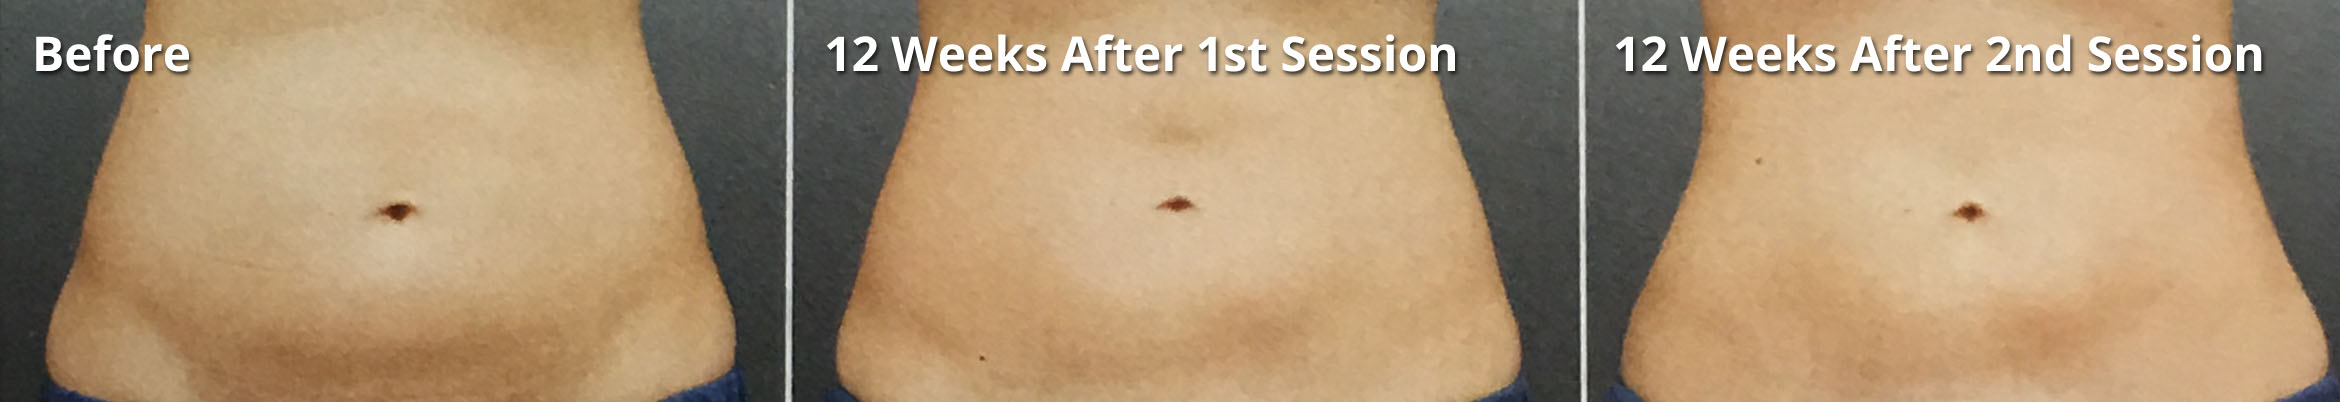 Coolsculpting - Stomach fat removal - Before and after